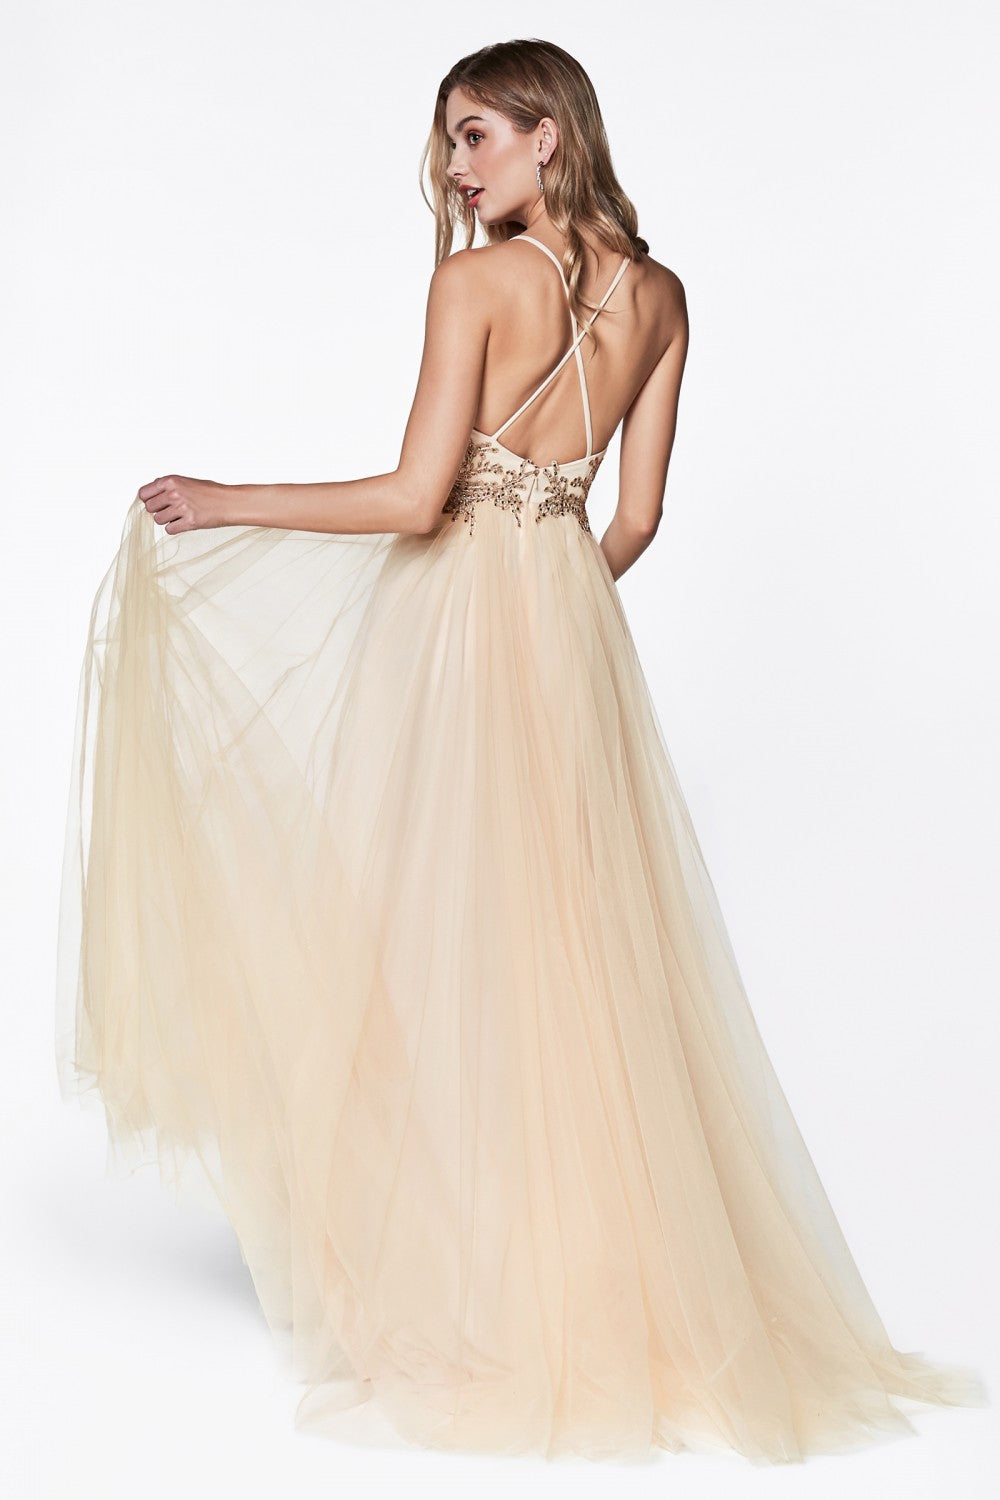 Flowy A-Line Tulle Dress With Lace Bodice Detail And Criss Cross Back